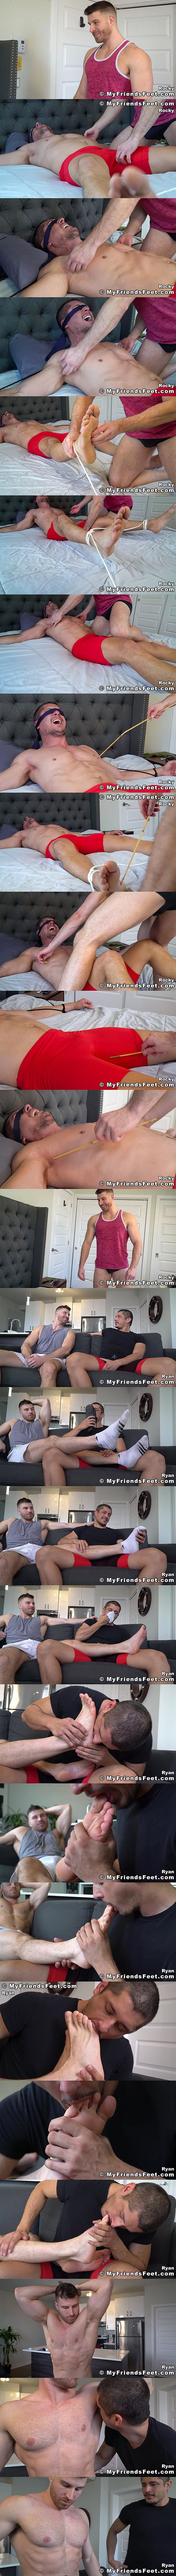 Muscle stud Rocky Vallarta gets tickled by hot hunky newcomer Ryan Ellis before Rocky worships, sniffs and licks Ryan's socks and bare feet at Myfriendsfeet 01